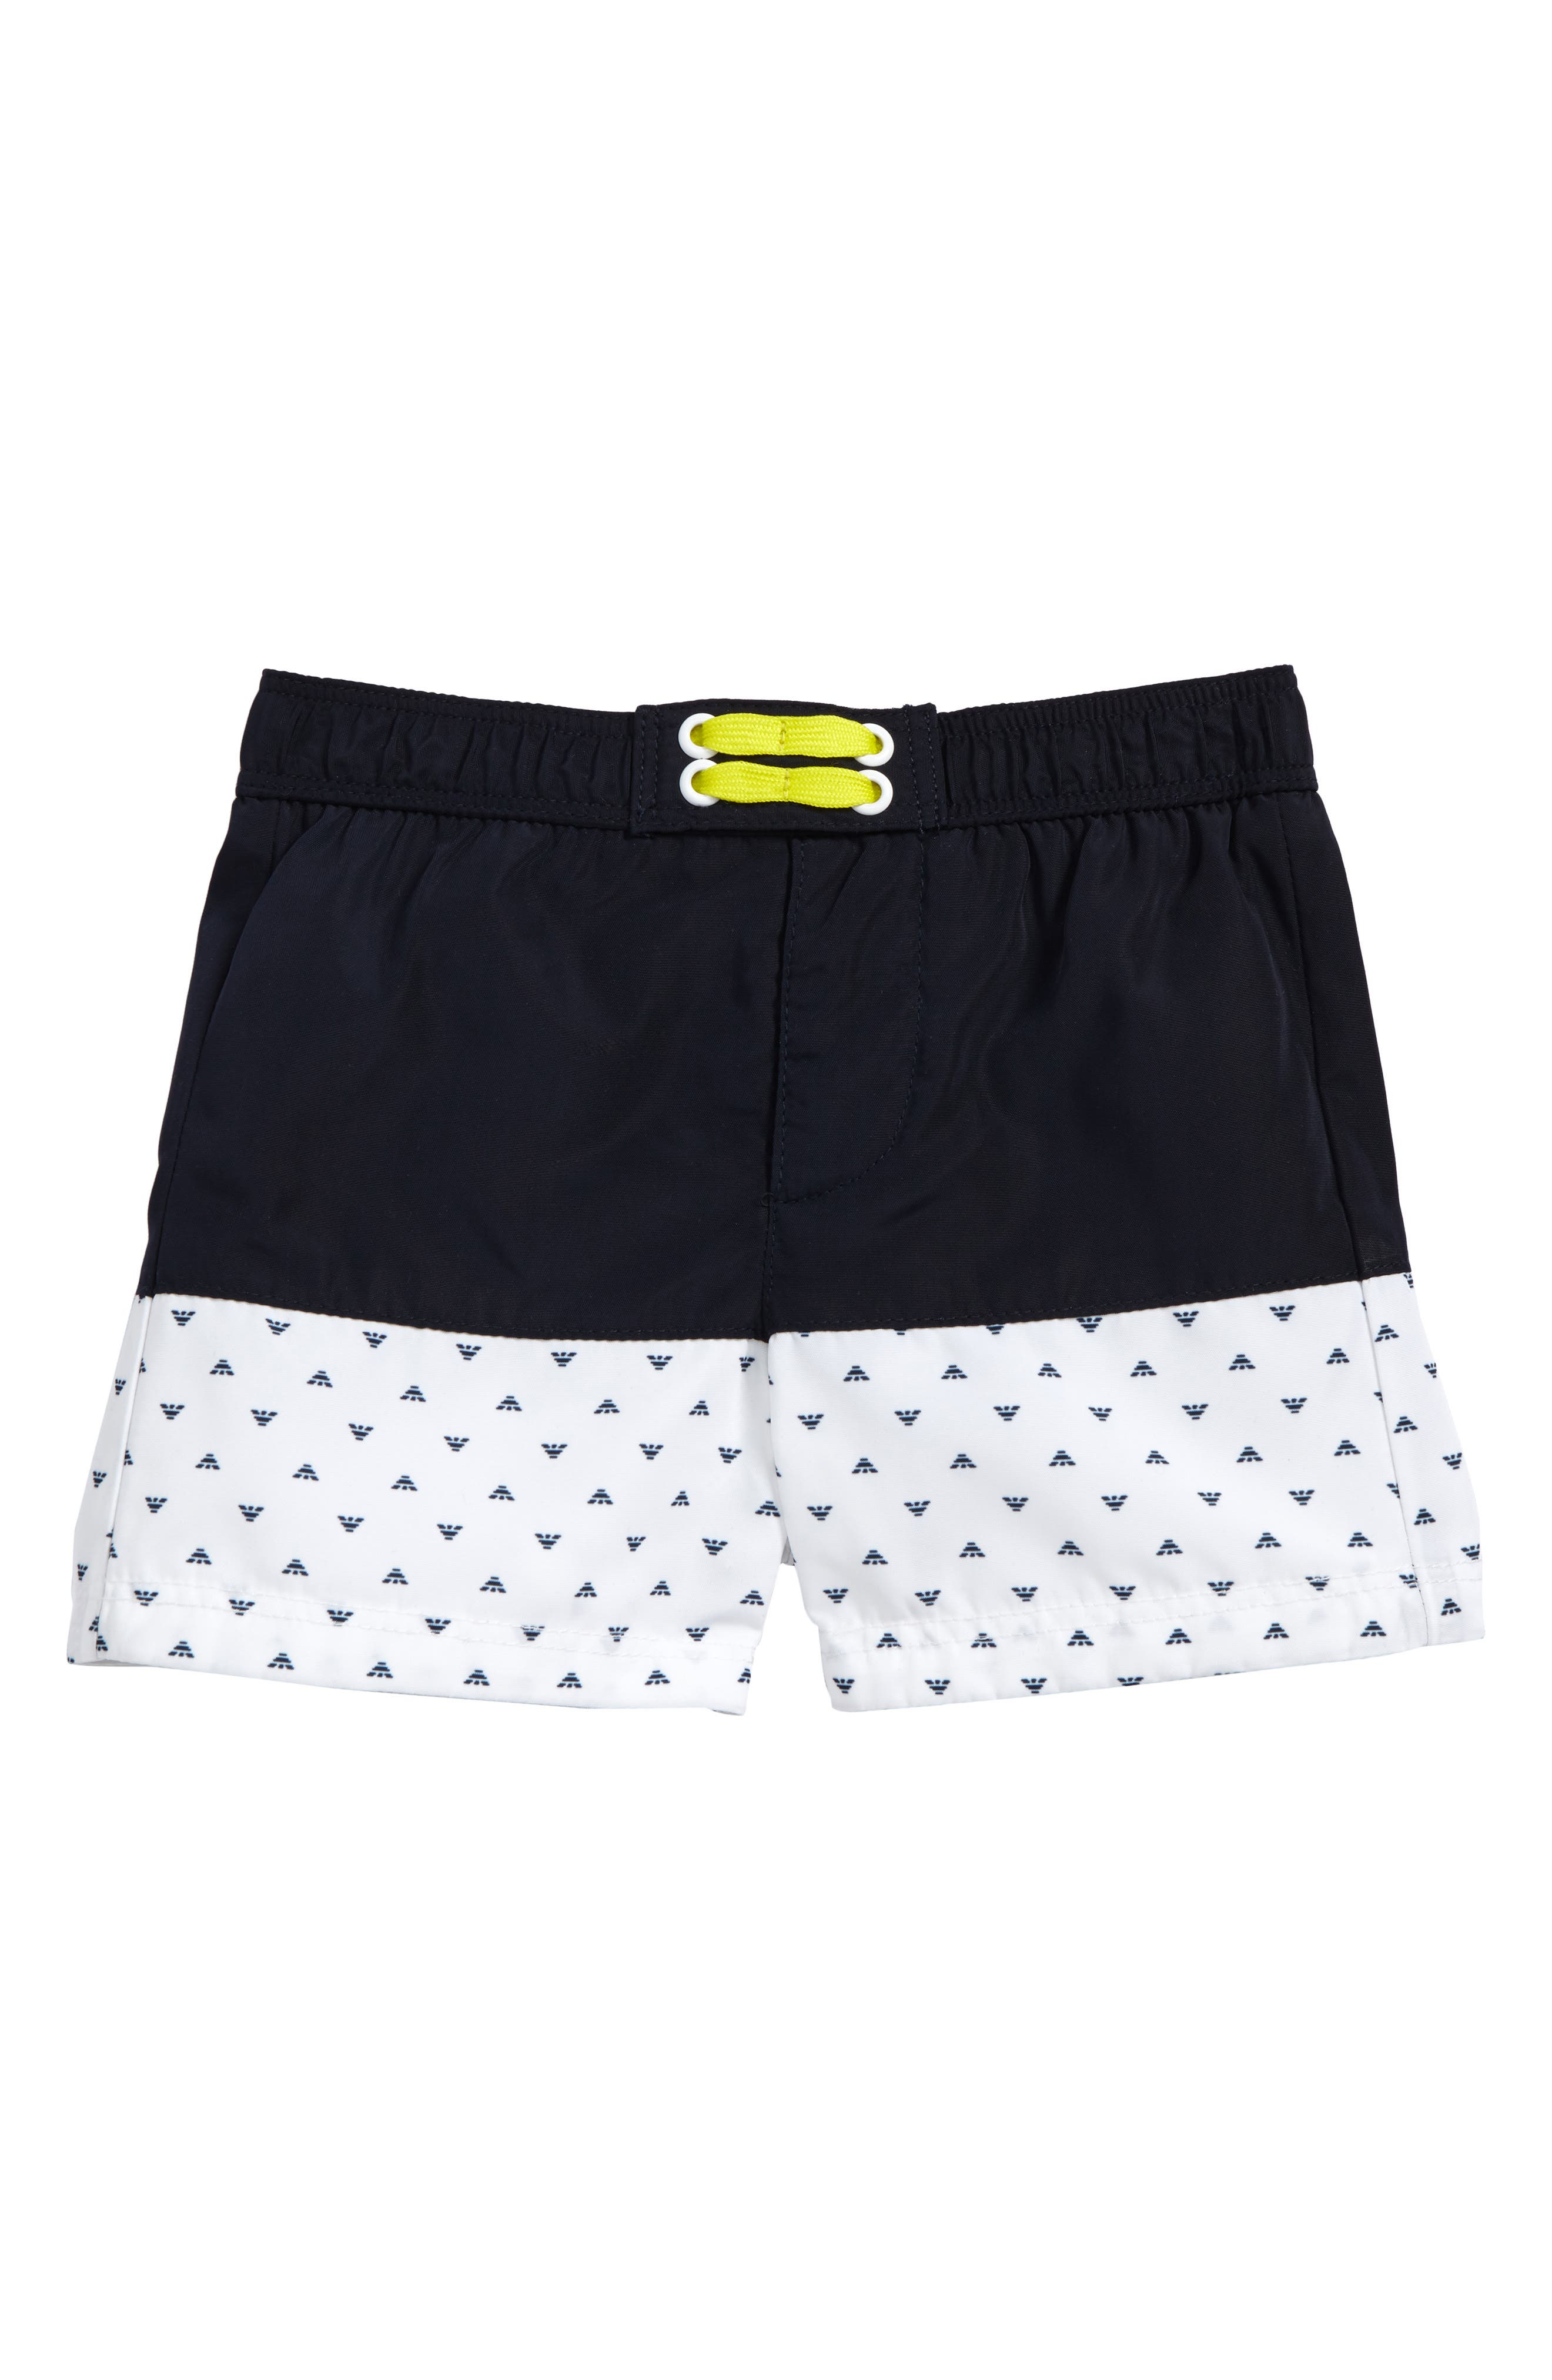 Logo Swim Trunks,                         Main,                         color, Navy